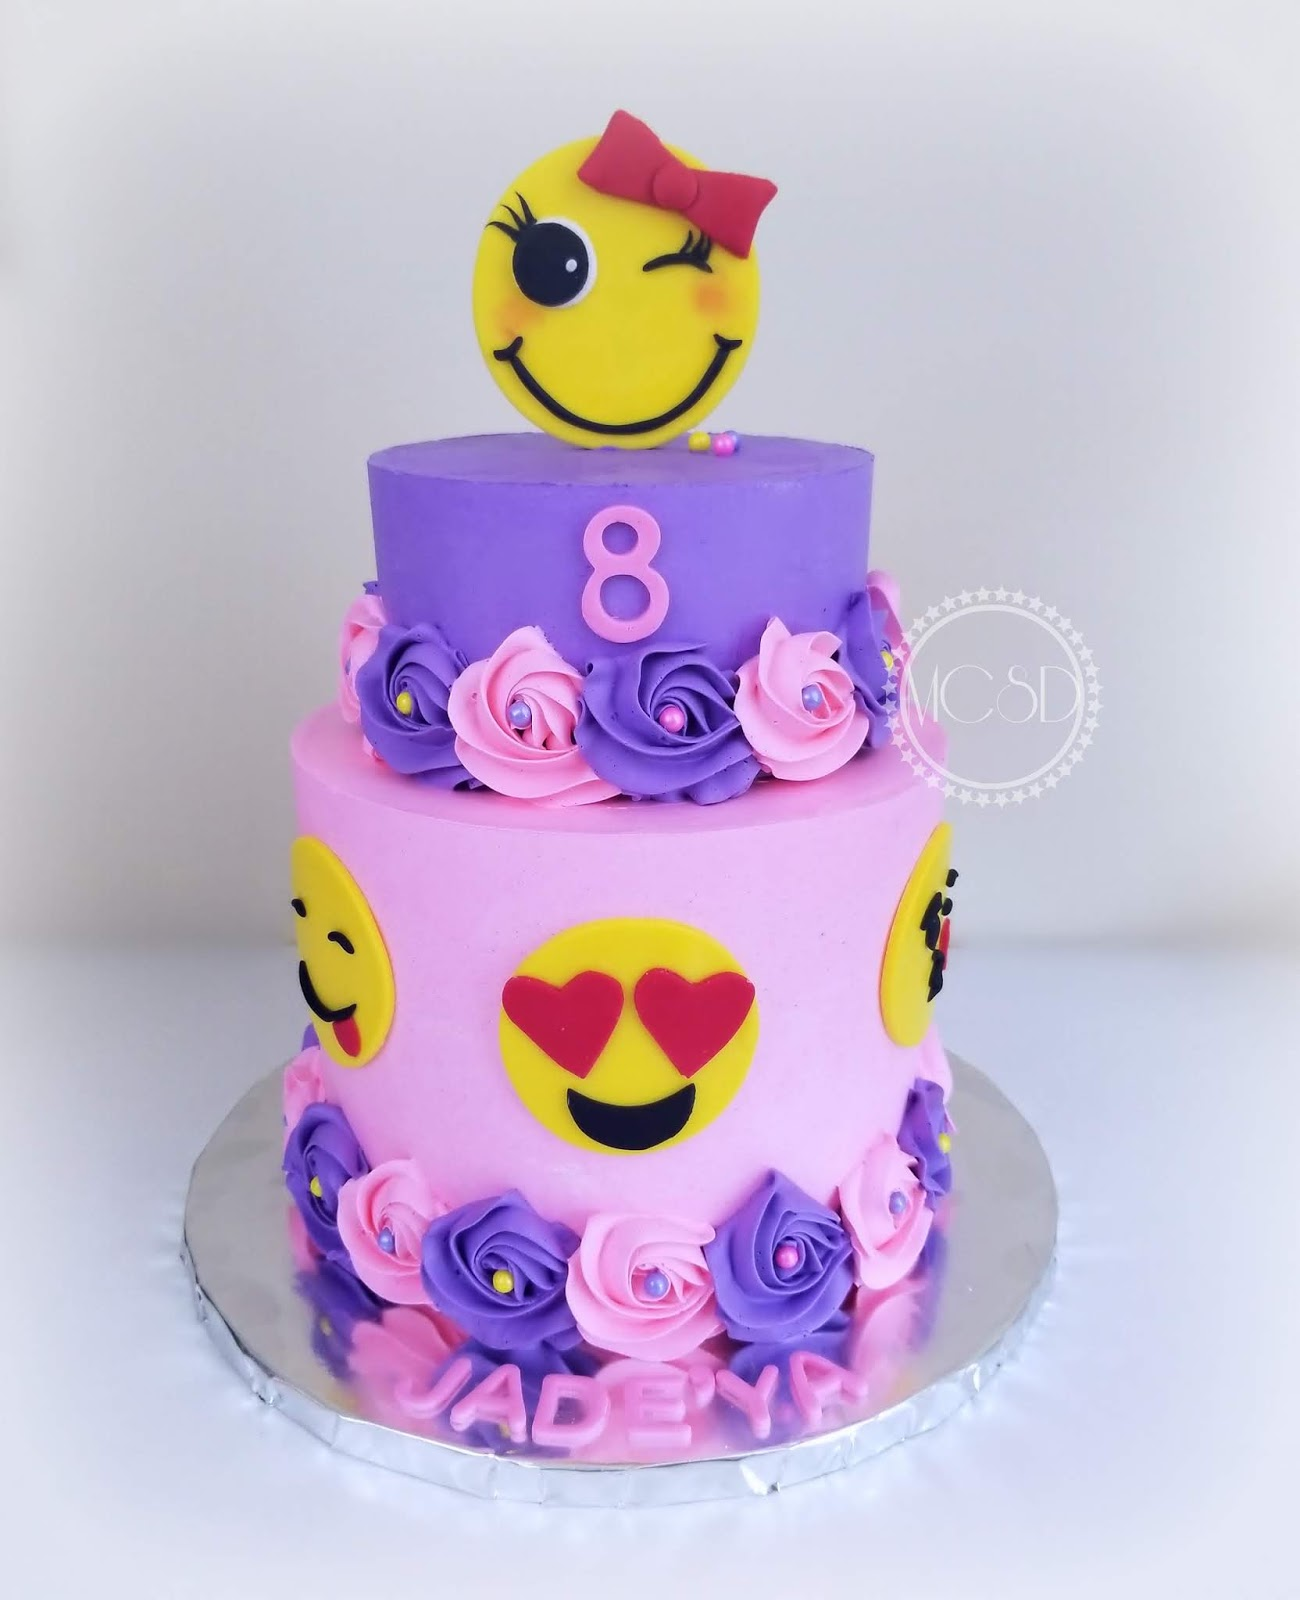 Emoji Birthday Cake Happy Jadeya Emojibirthdaycake Ismb Buttercreamsharpeedges